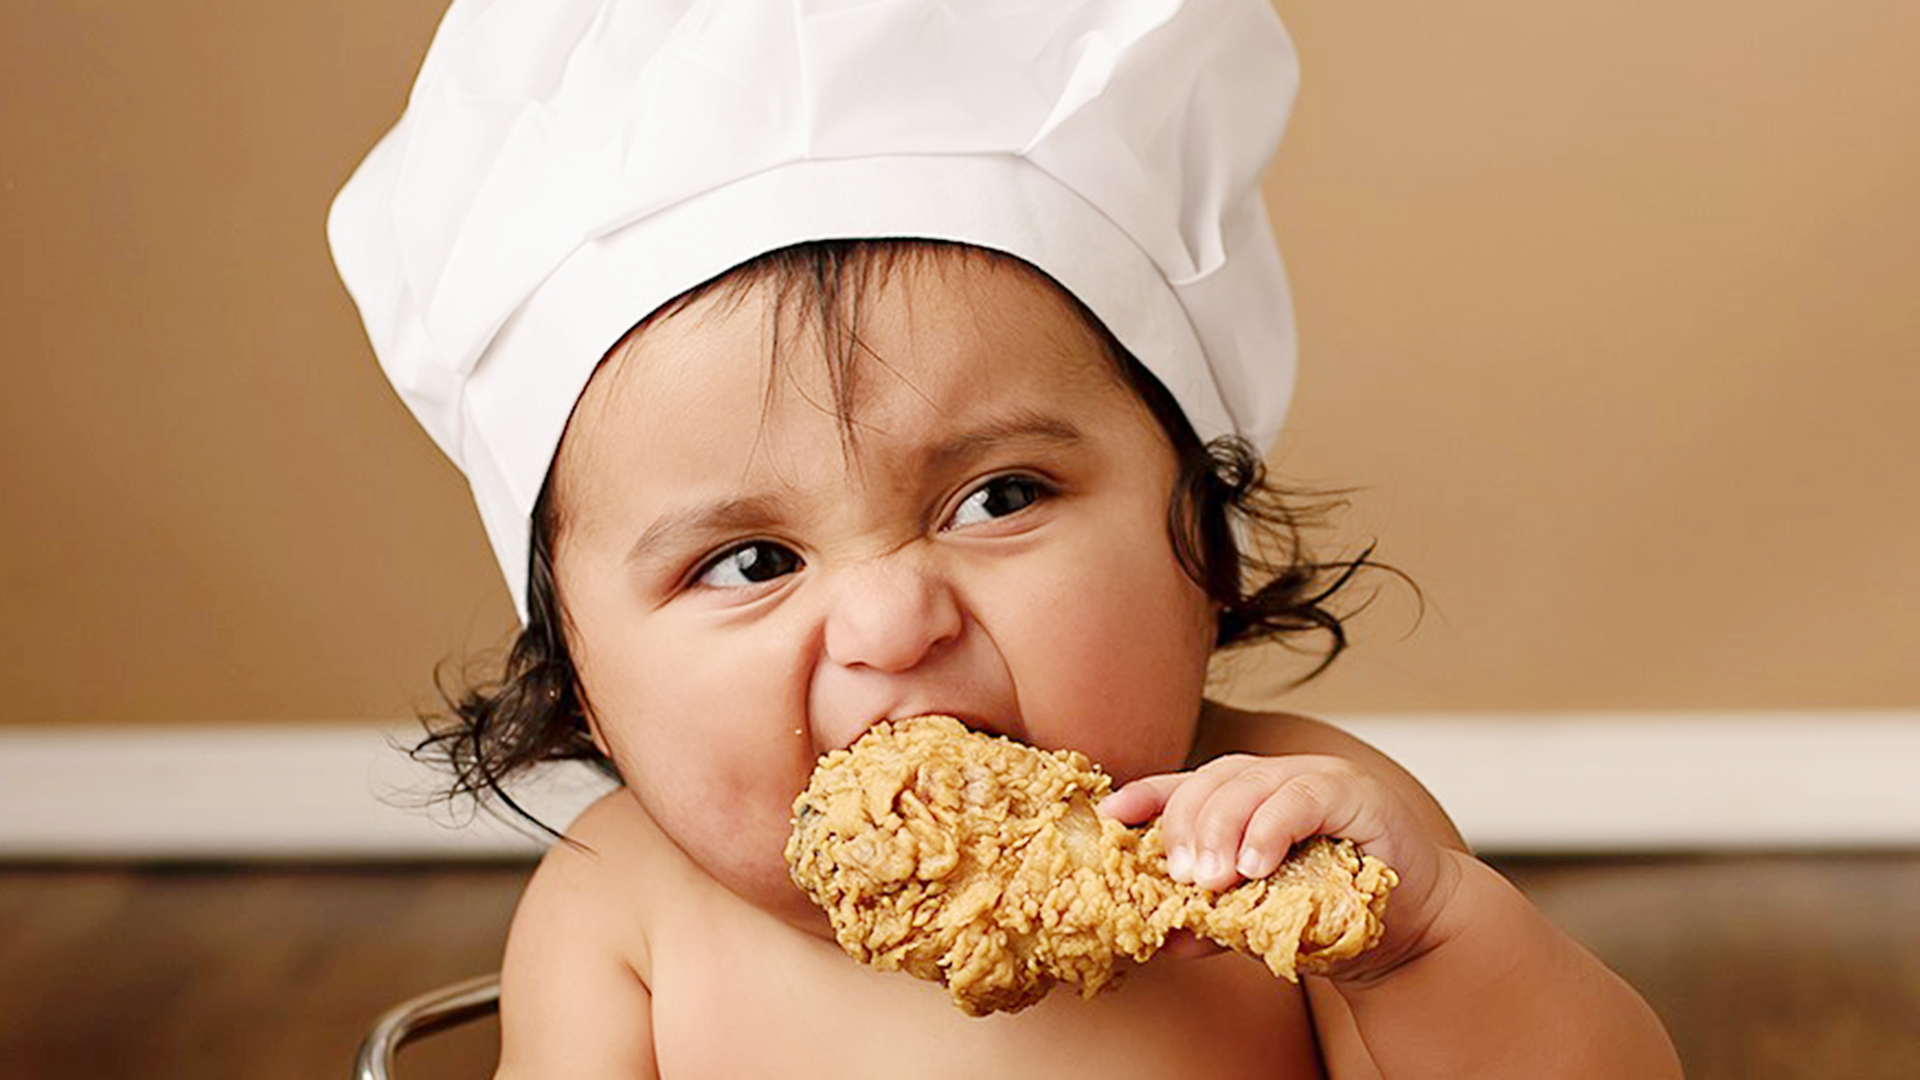 baby tries fried chicken for 1st time in cute photo shoot